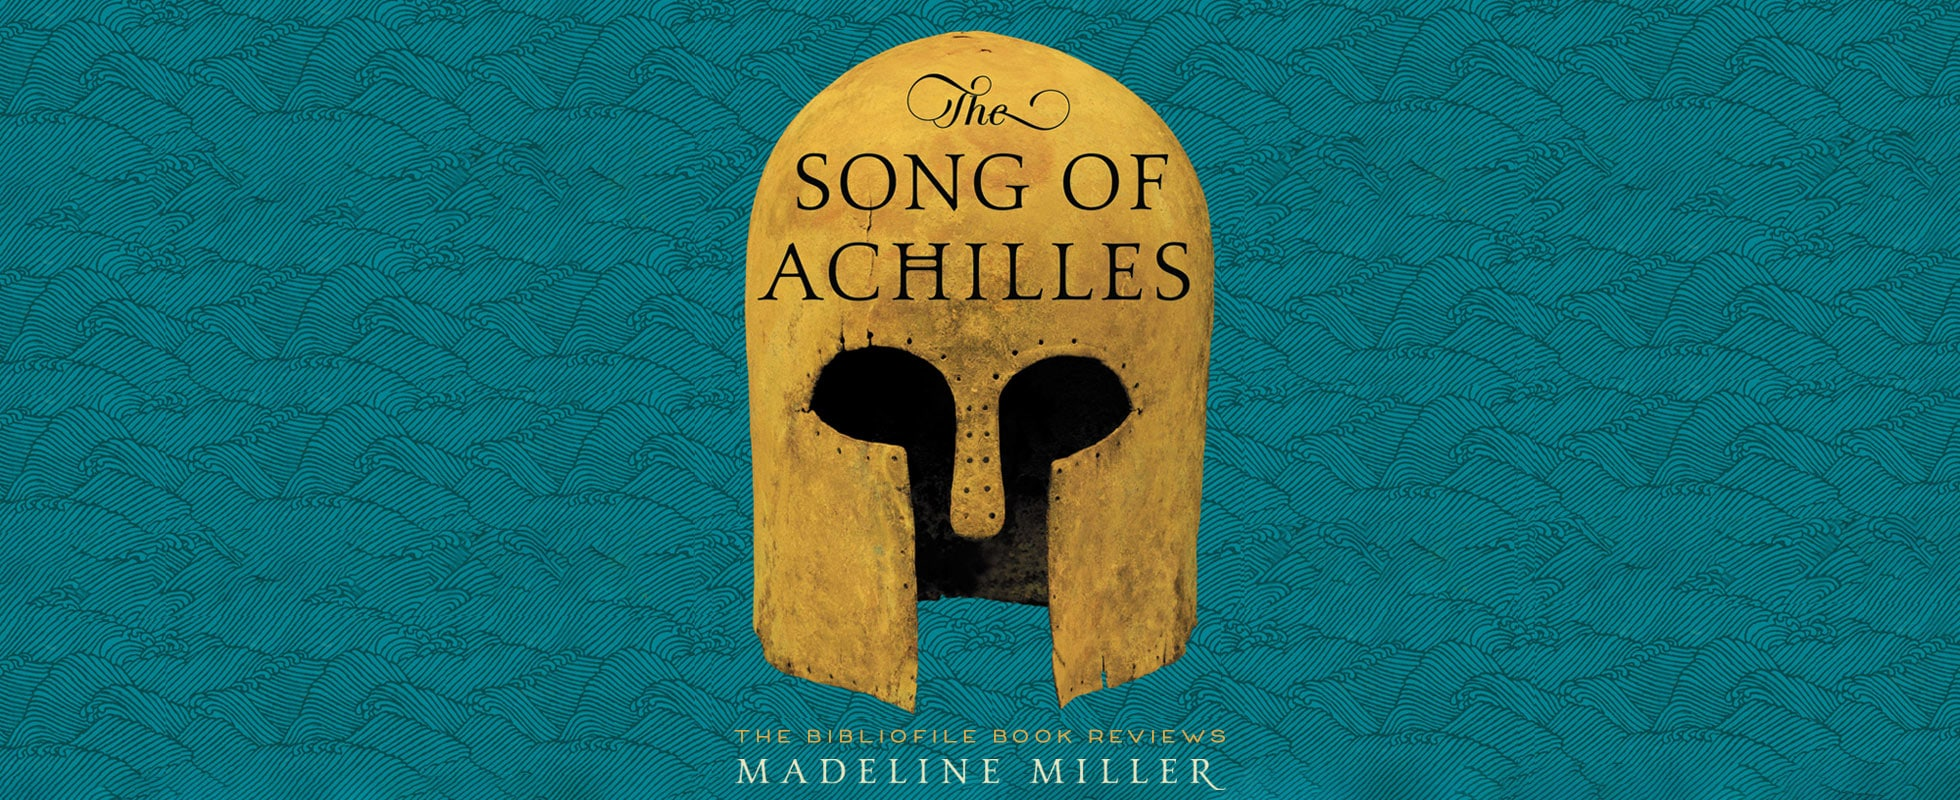 the song of achilles by madeline miller book review plot summary synopsis recap